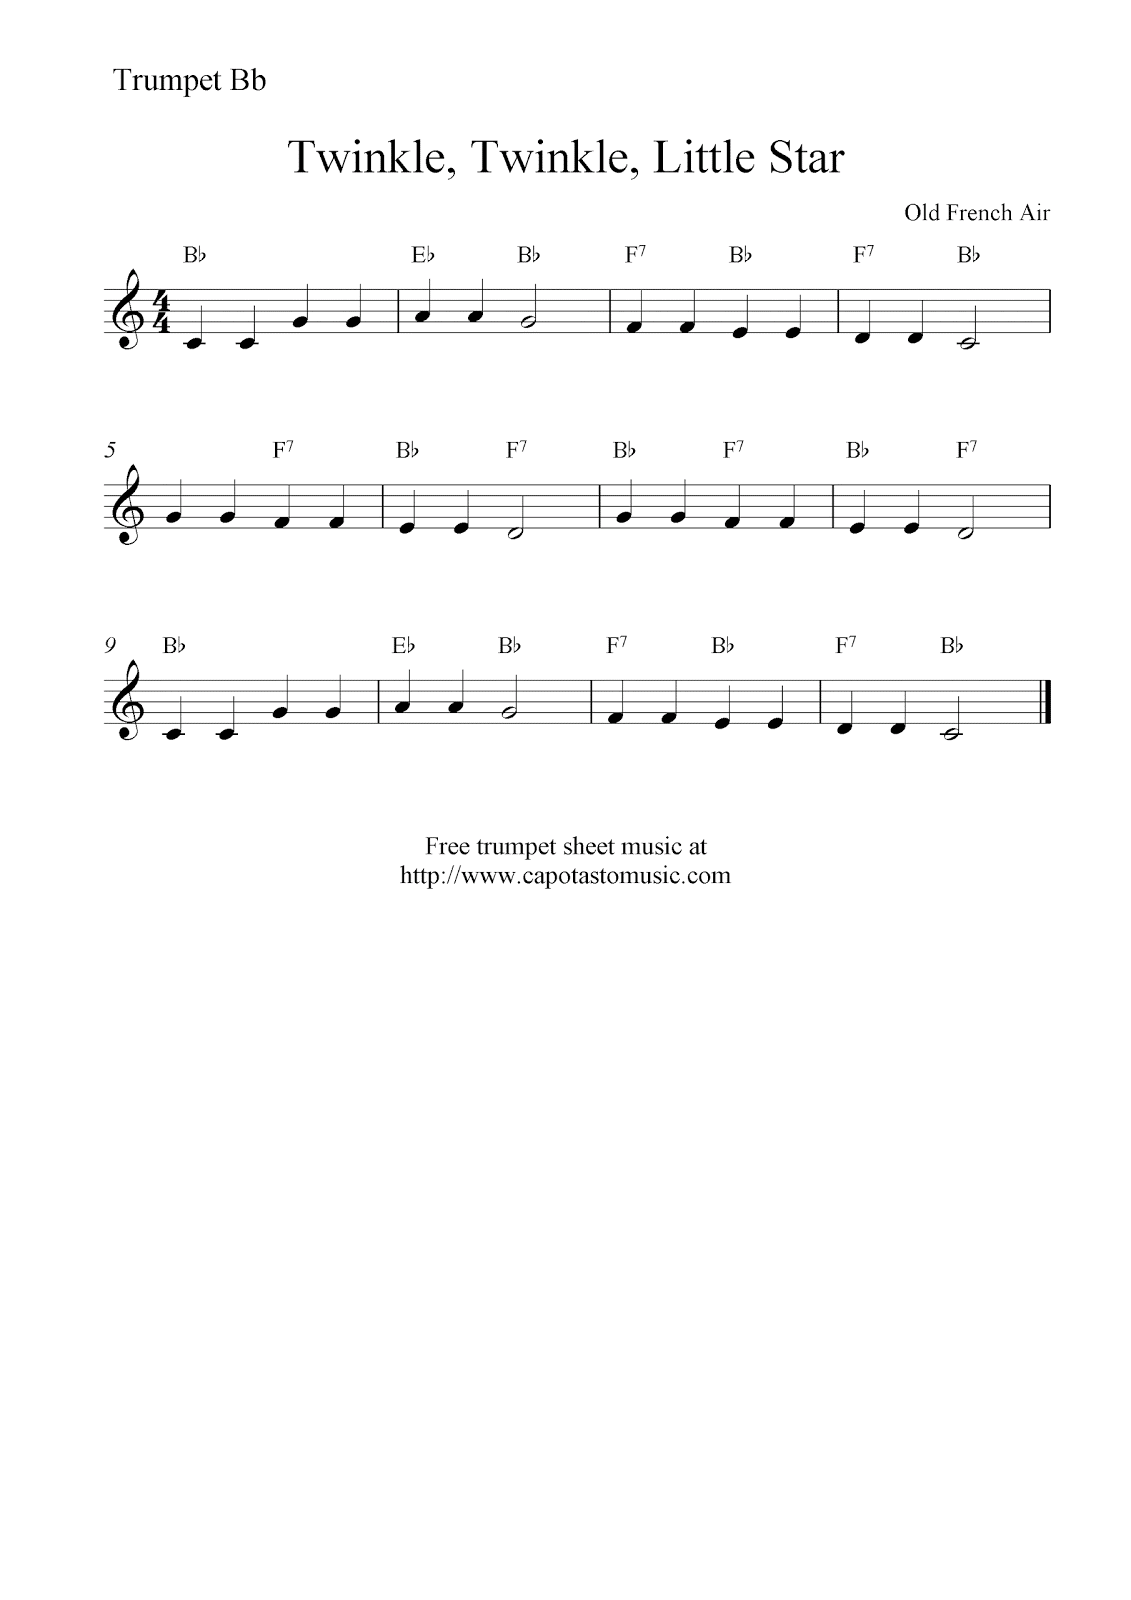 Twinkle twinkle little star free trumpet sheet music notes hexwebz Choice Image